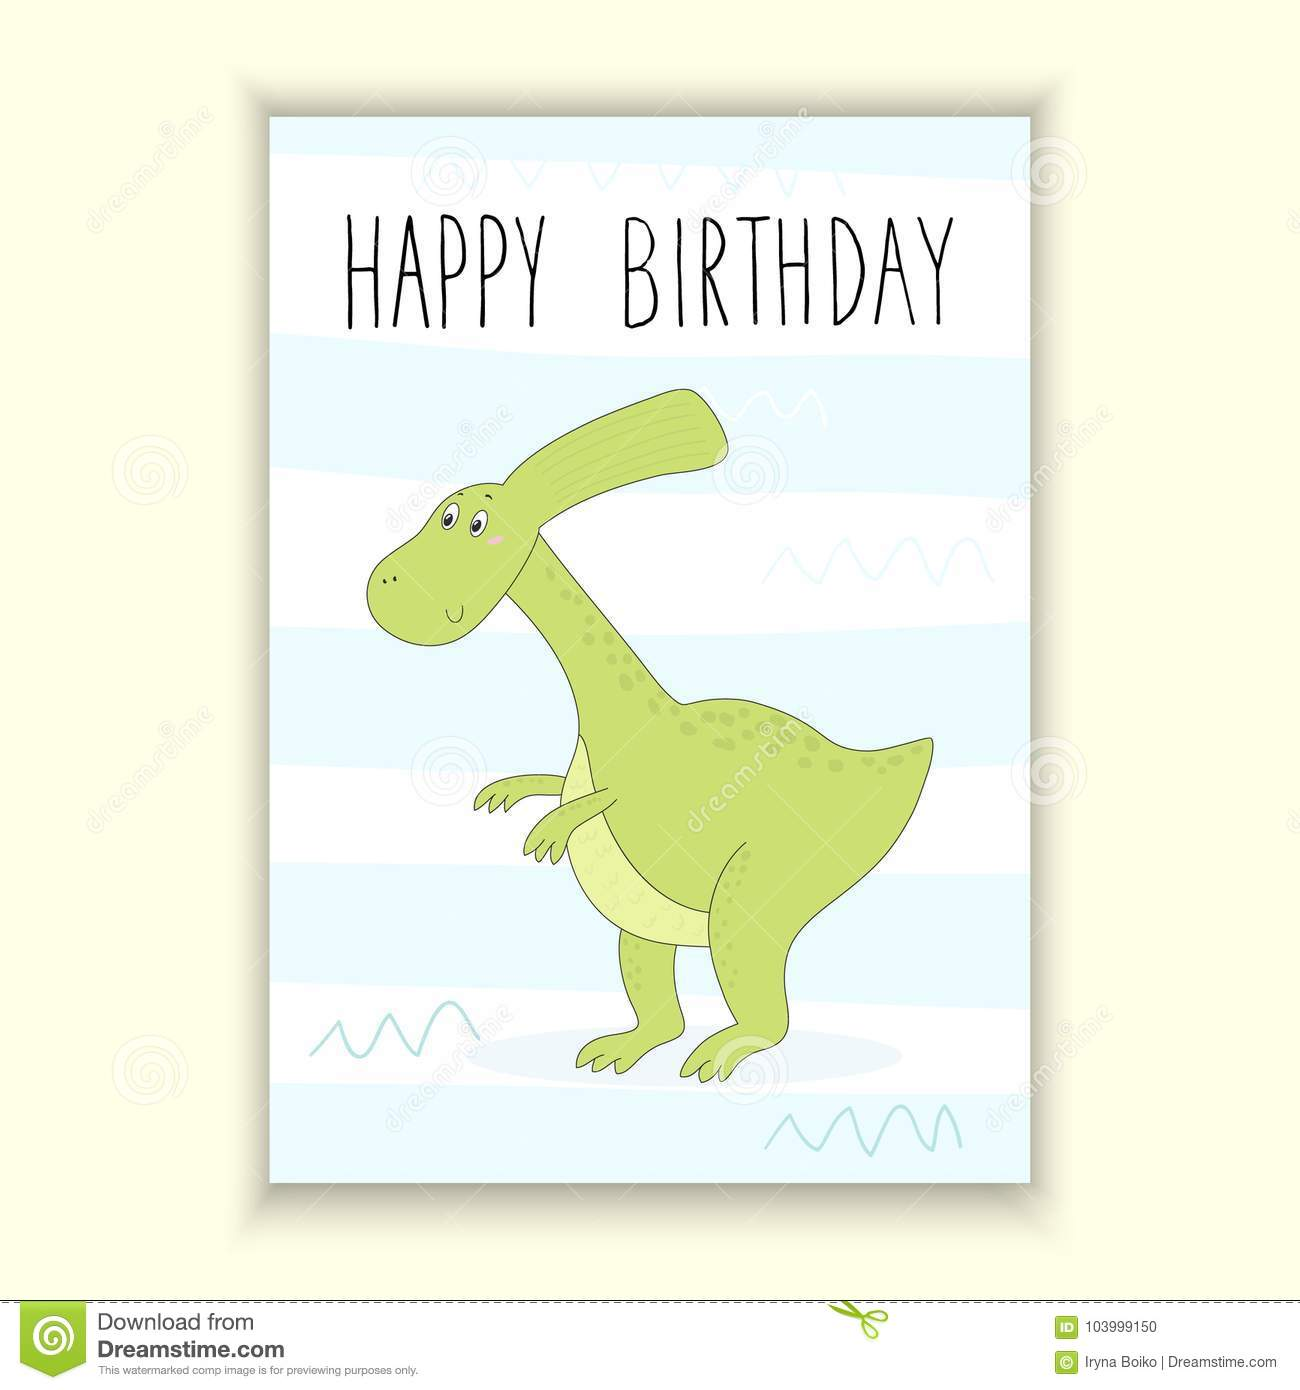 Happy Birthday Card Design Cute Hand Drawn With Dinosaur Printable Template